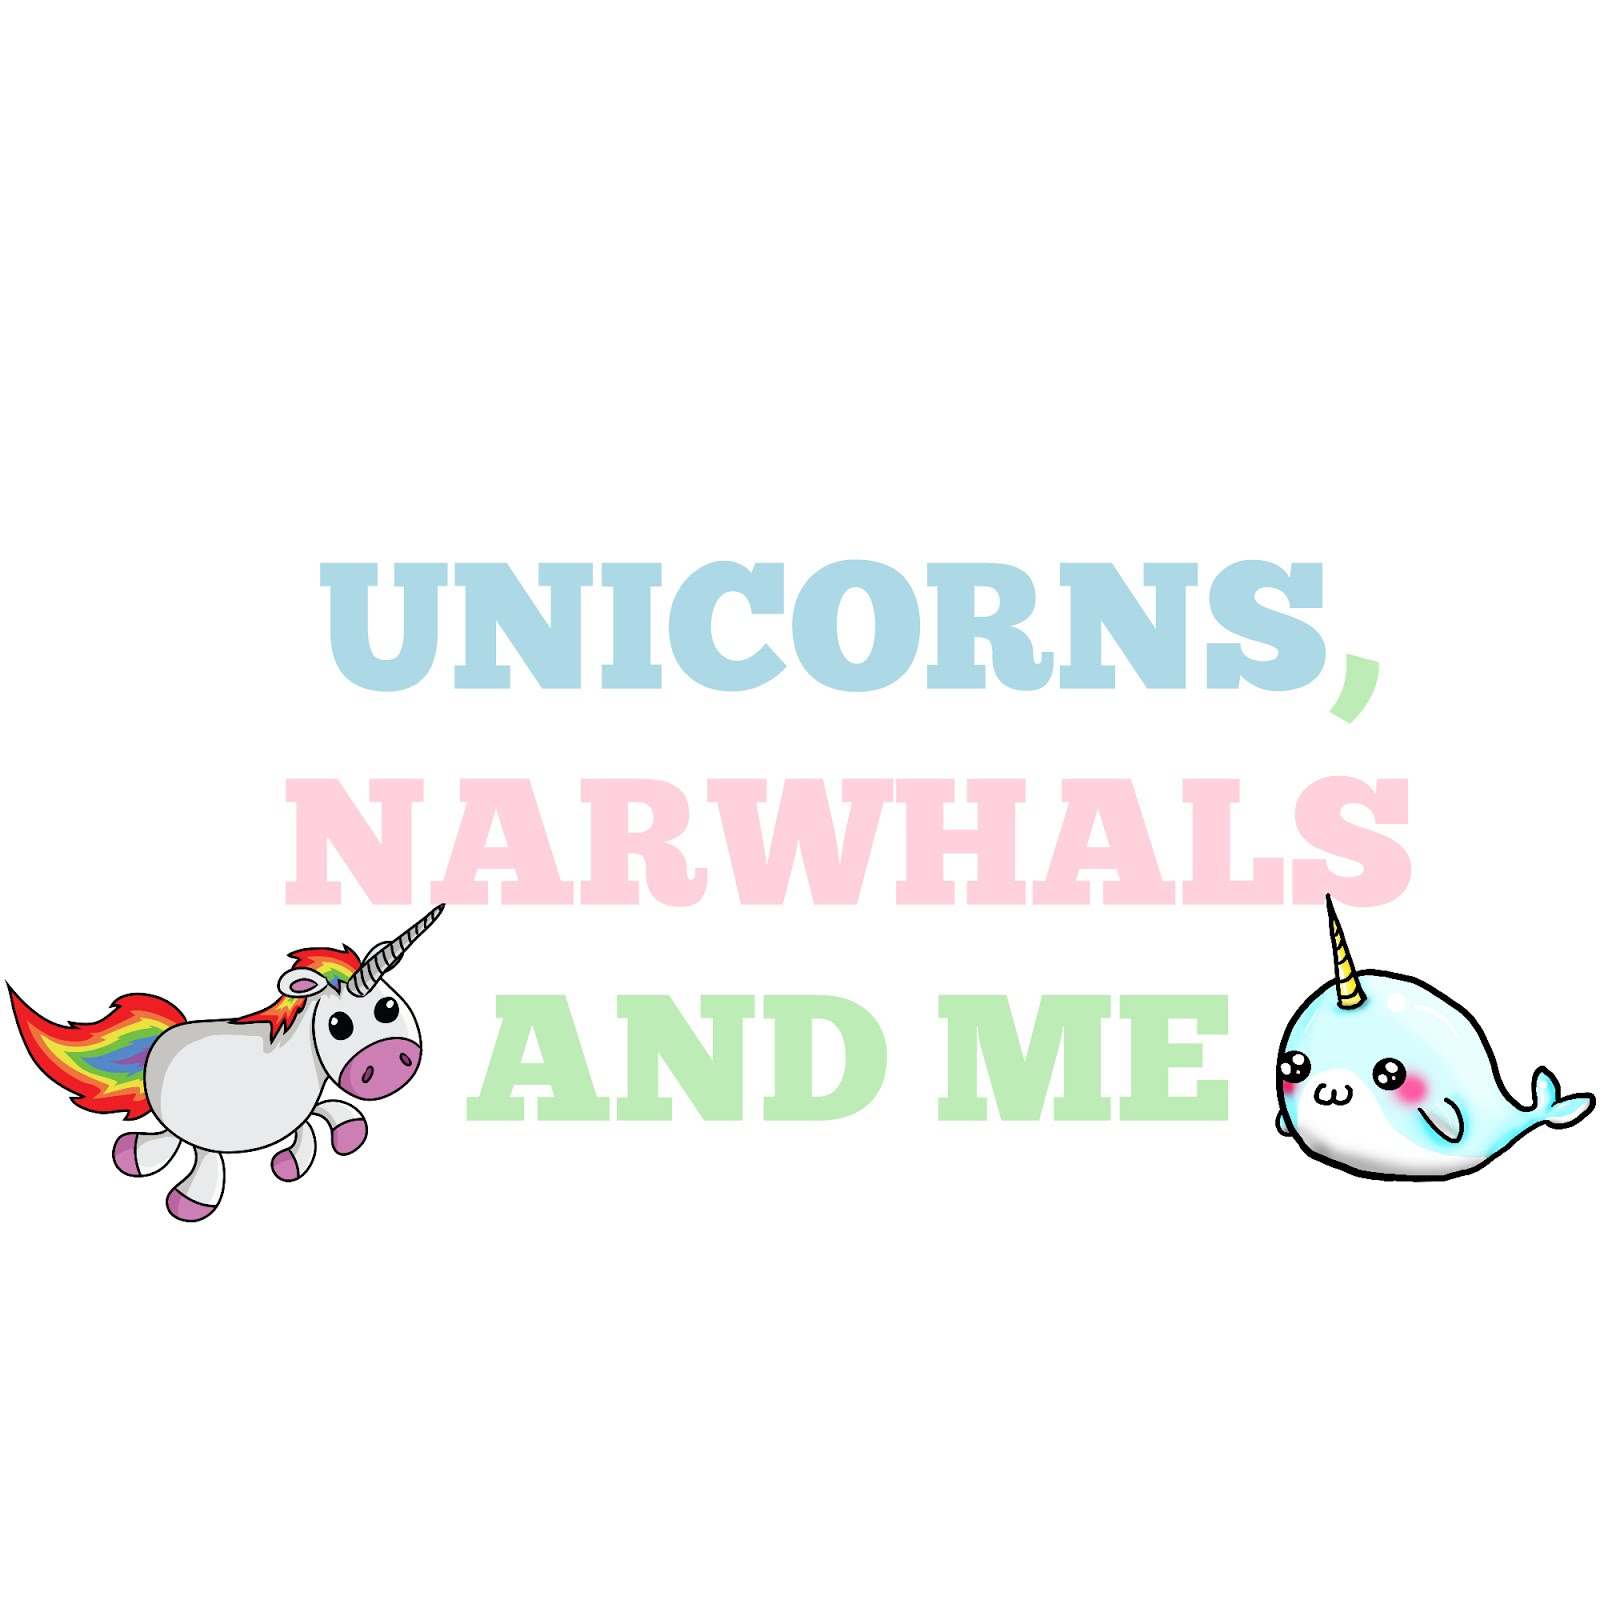 Unicorns, Narwhals And Me